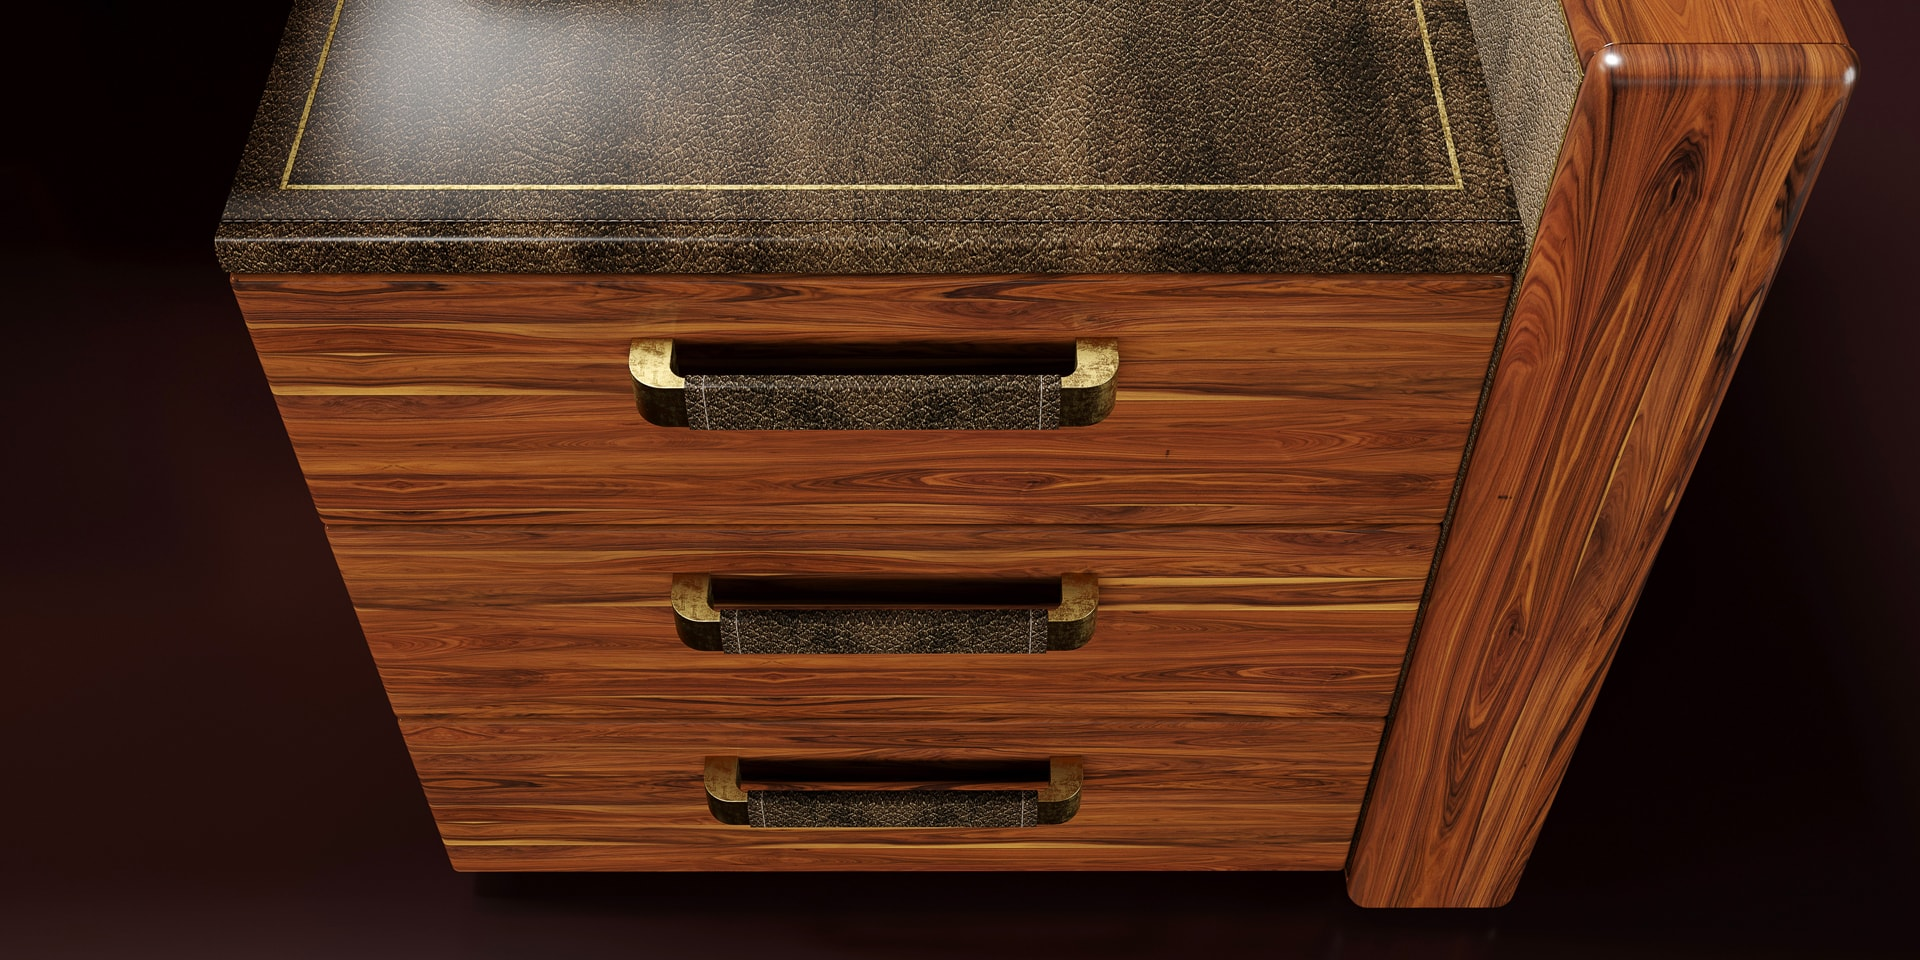 TAO cabinet system